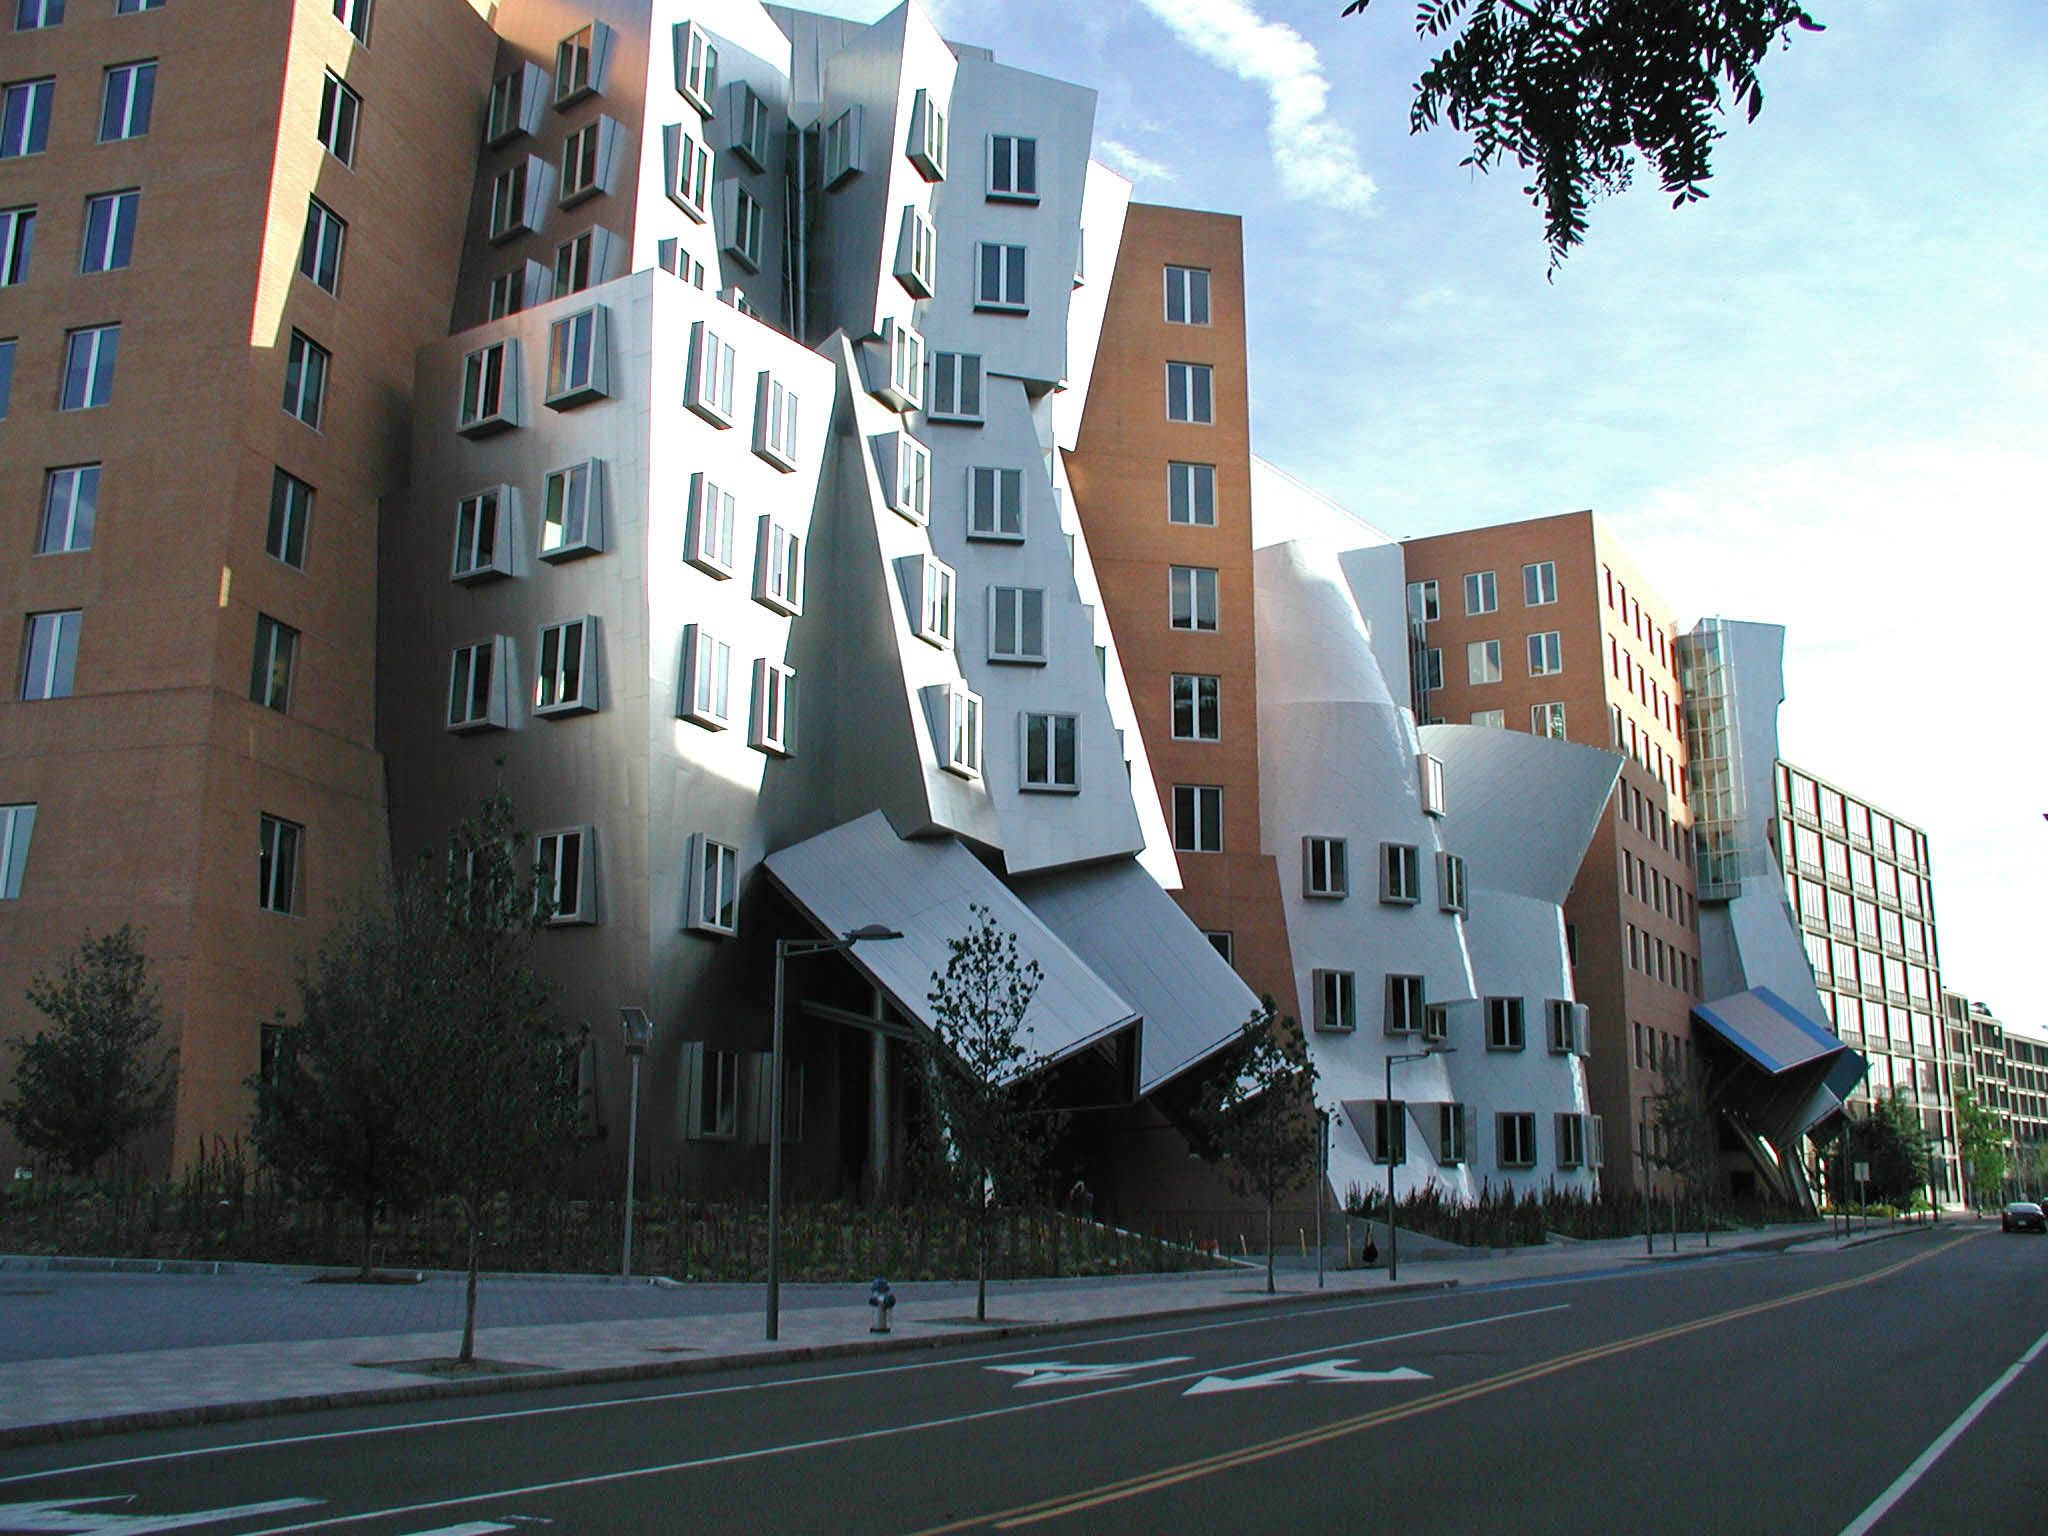 Mit Computer Science And Artificial Intelligence Laboratory